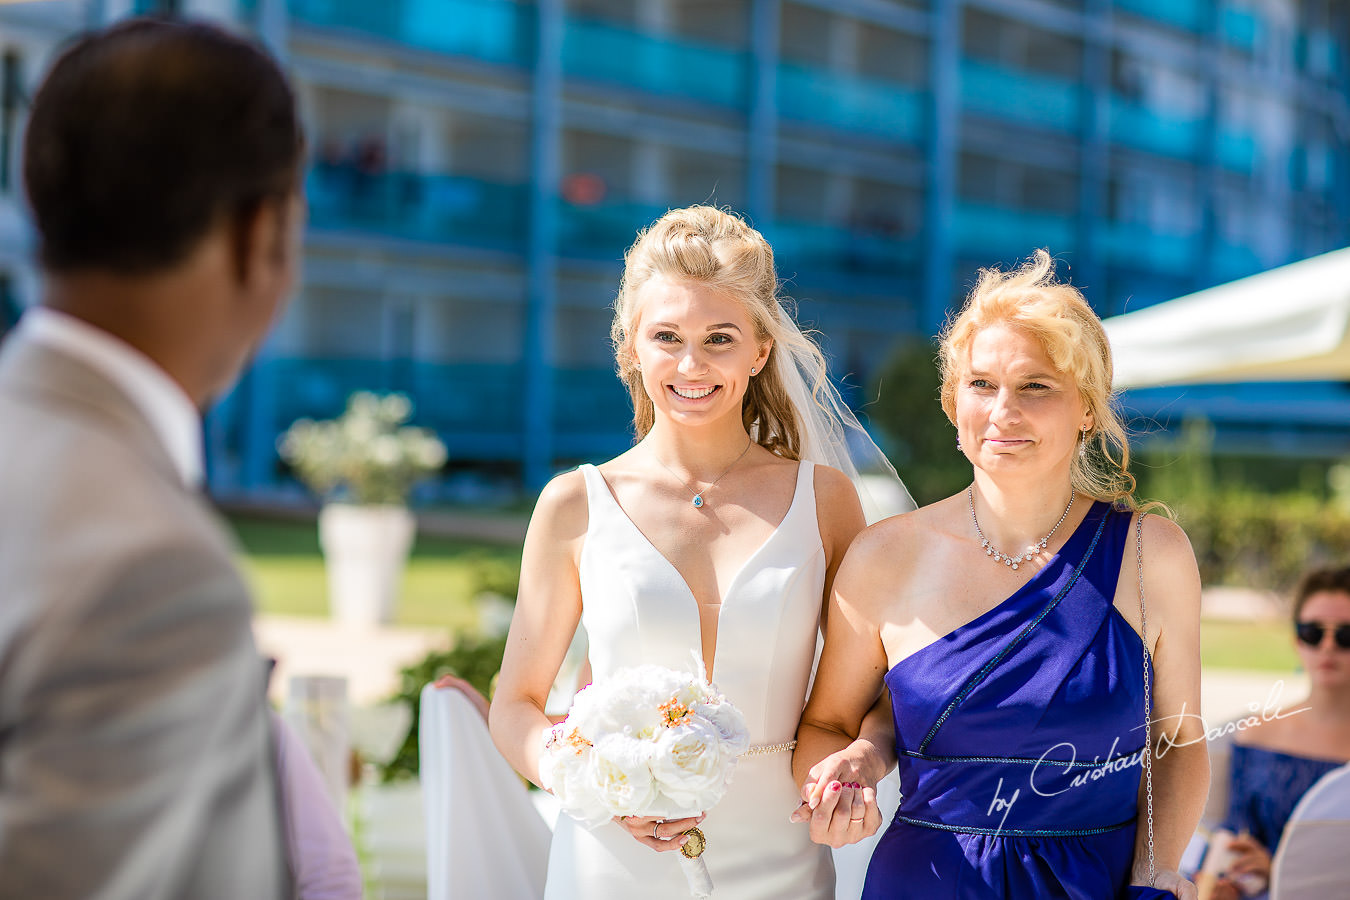 Bride arrival at an Exquisite Wedding at Asterias Beach Hotel. Photography by Cyprus Photographer Cristian Dascalu.